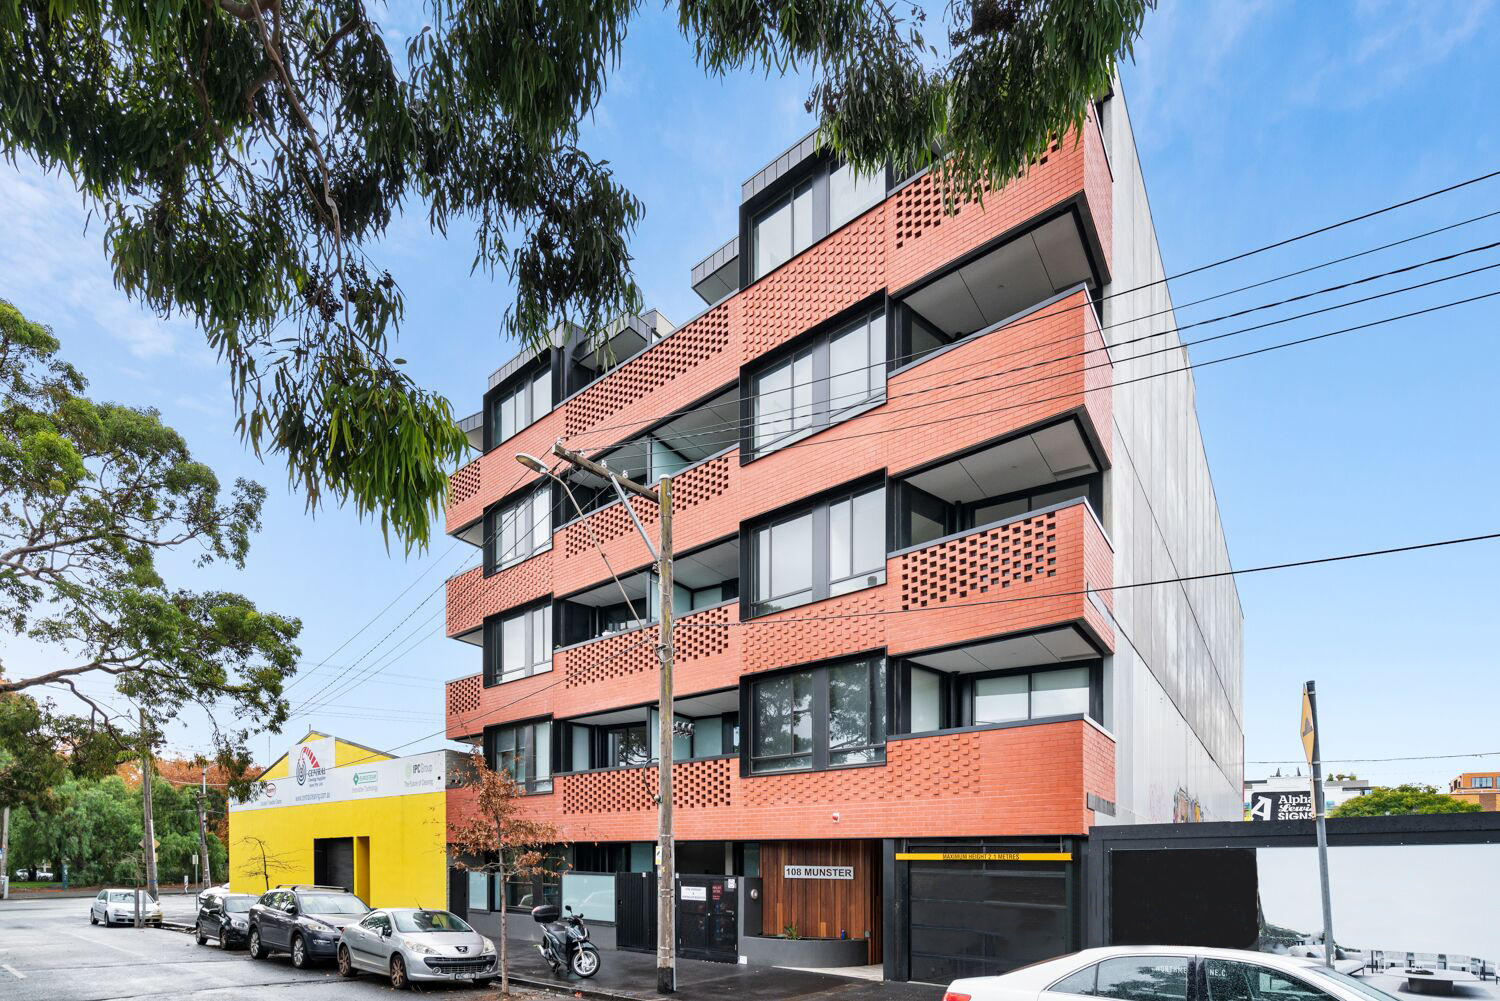 206-108-munster-terrace-north-melbourne-student-accommodation-Melbourne-Exterior-Unilodgers